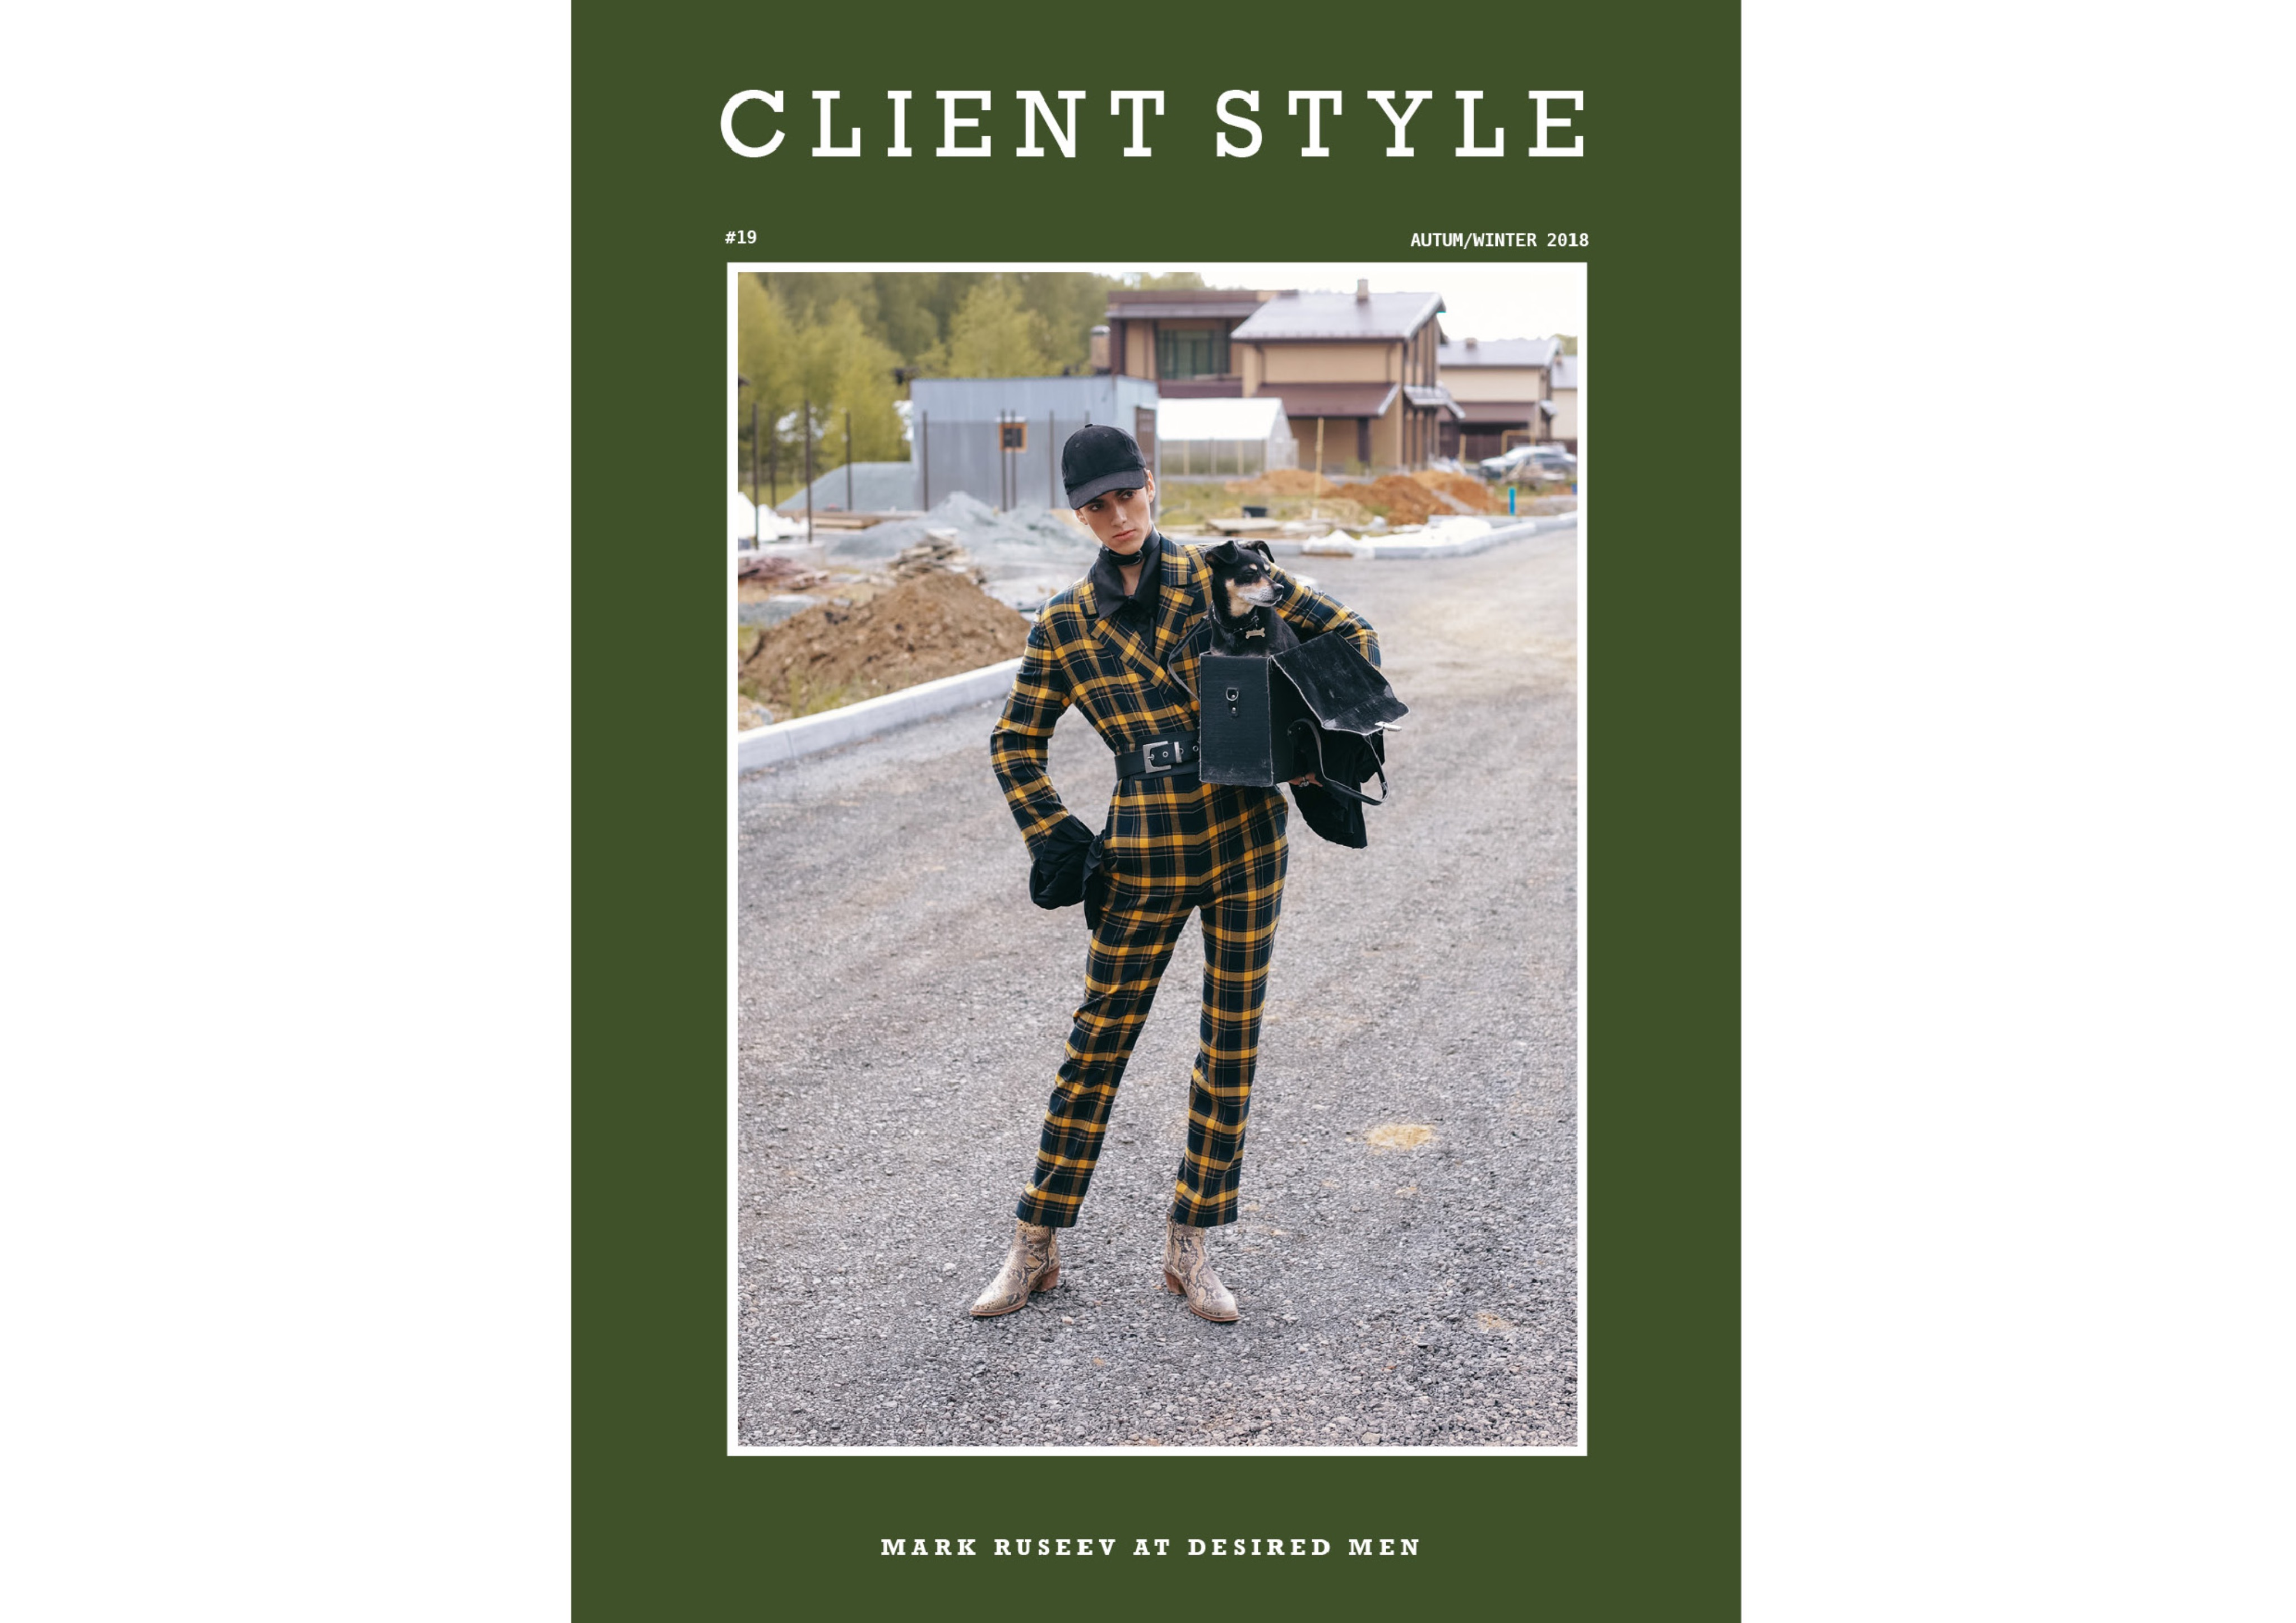 Client Style #19 (Digital Edition)